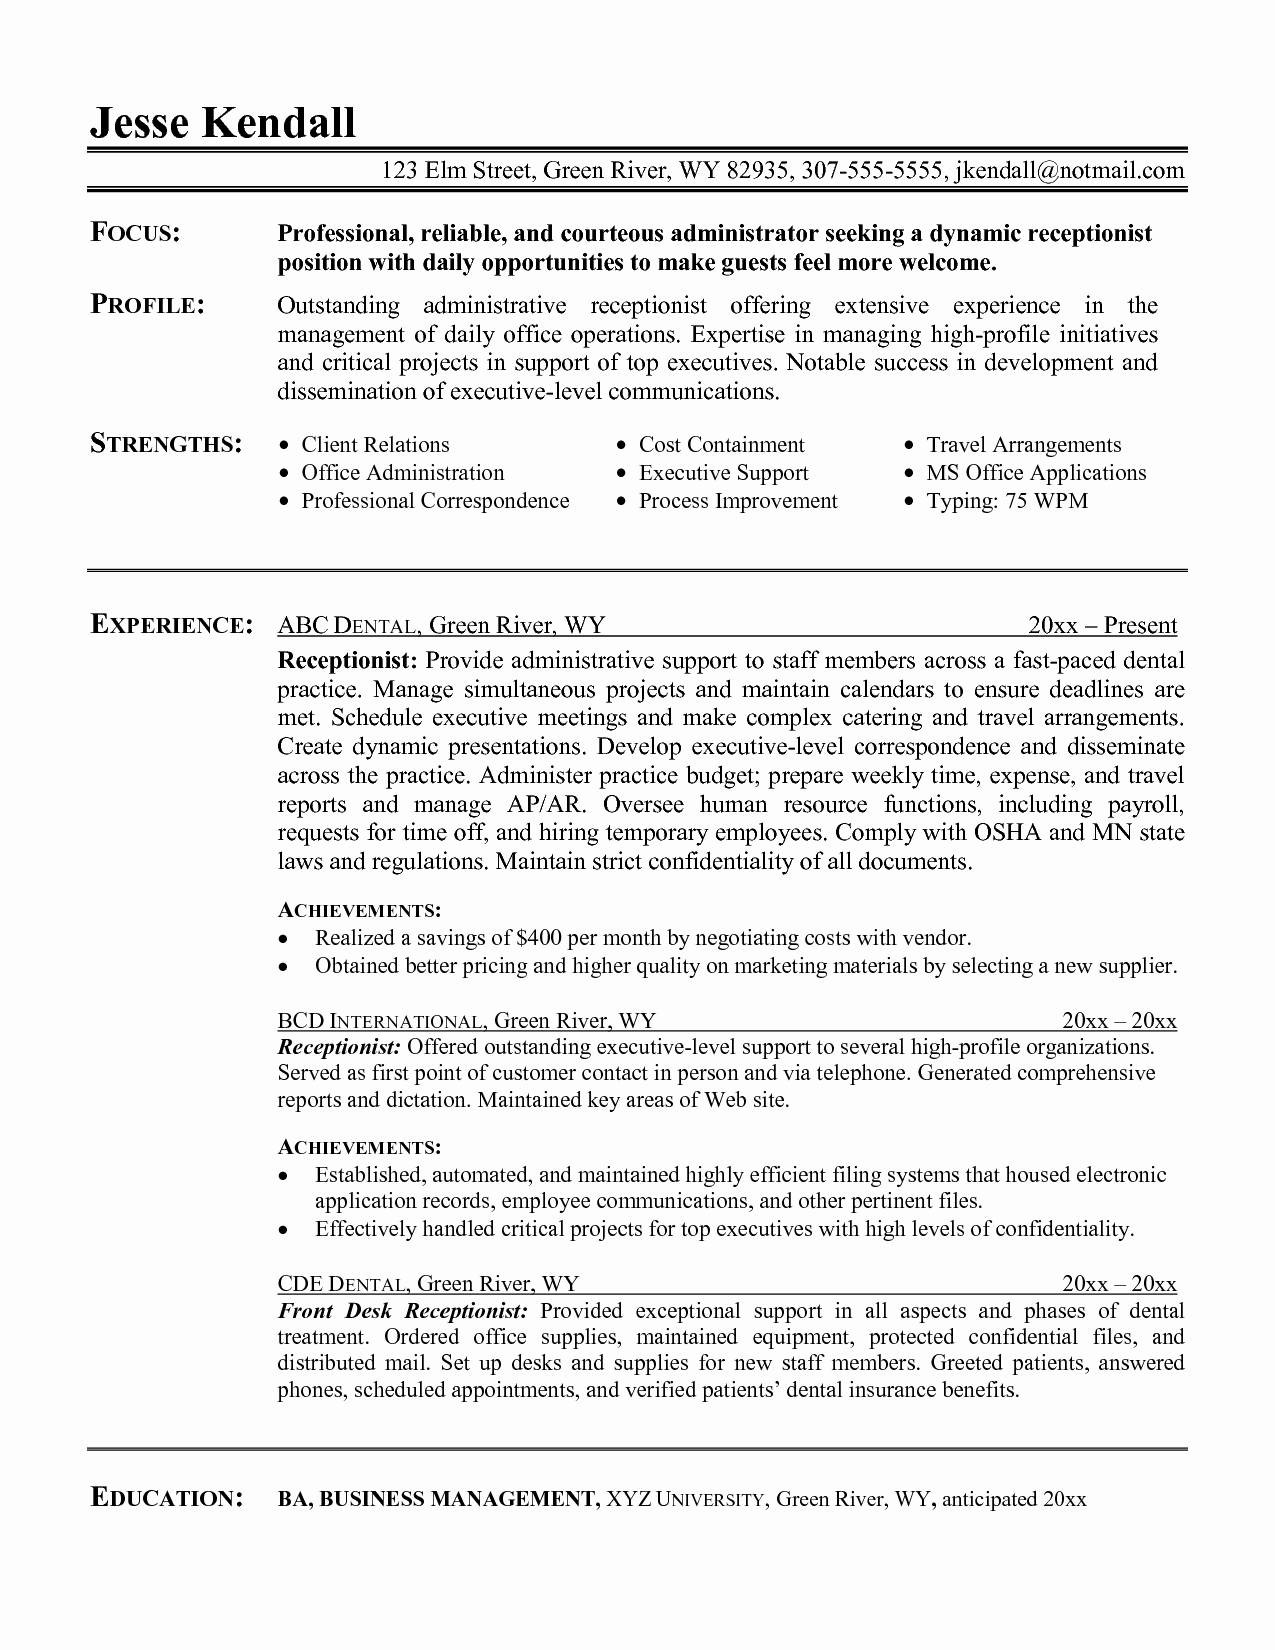 Law Firm Letter Template - Law Firm Cover Letter Inspirational Sample Legal Cover Letter